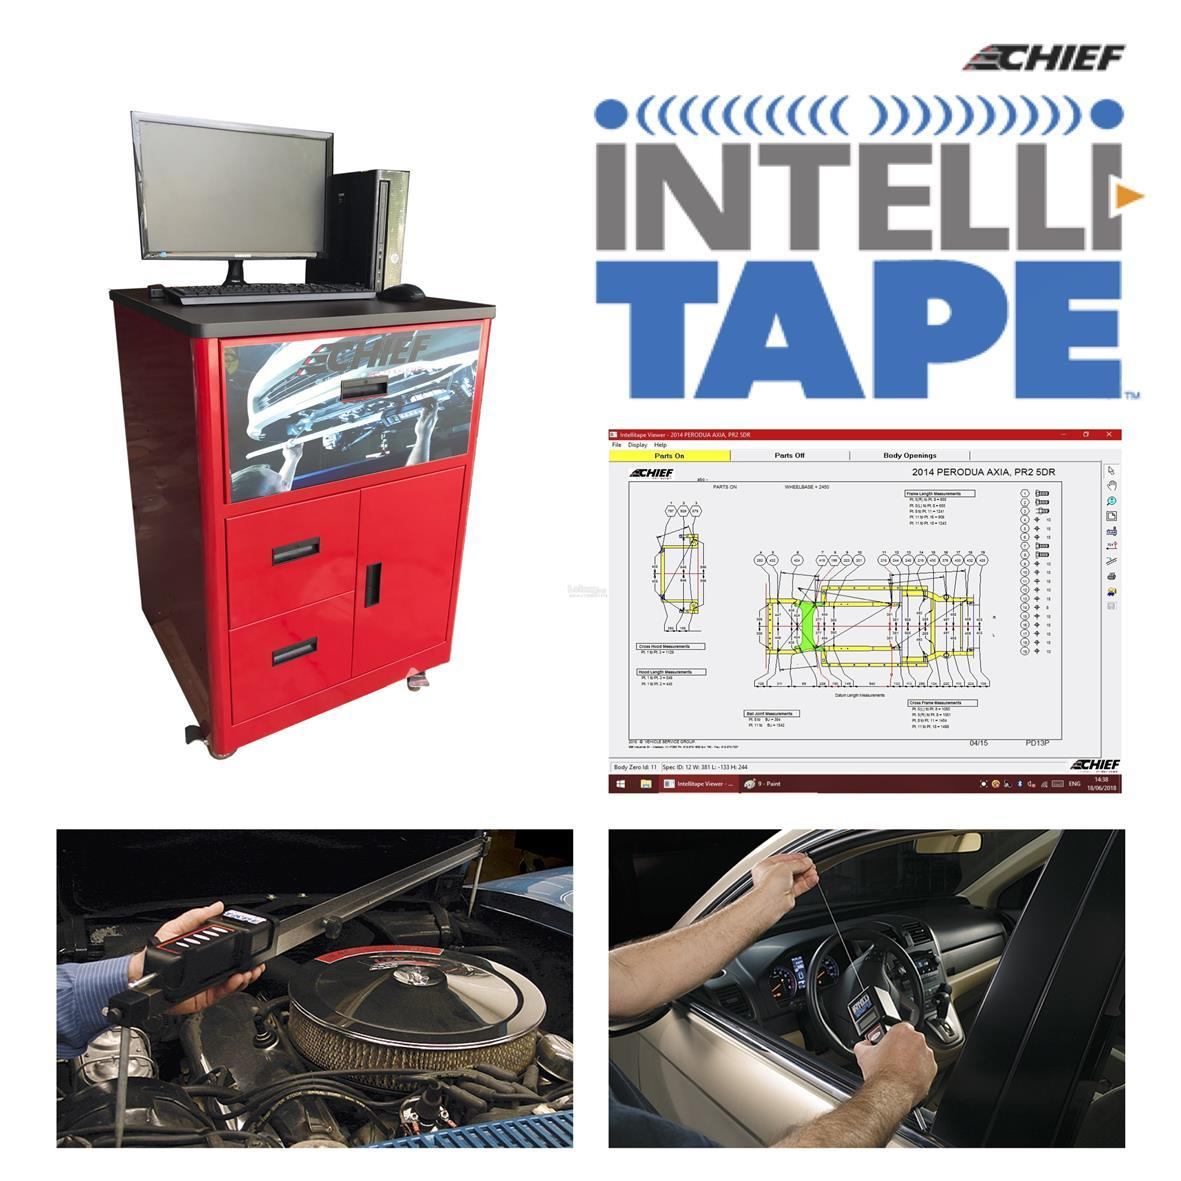 chief-auto-body-electronic-measuring-system-computer-hkautomotive-1808-21-HKAUTOMOTIVE@3.jpg